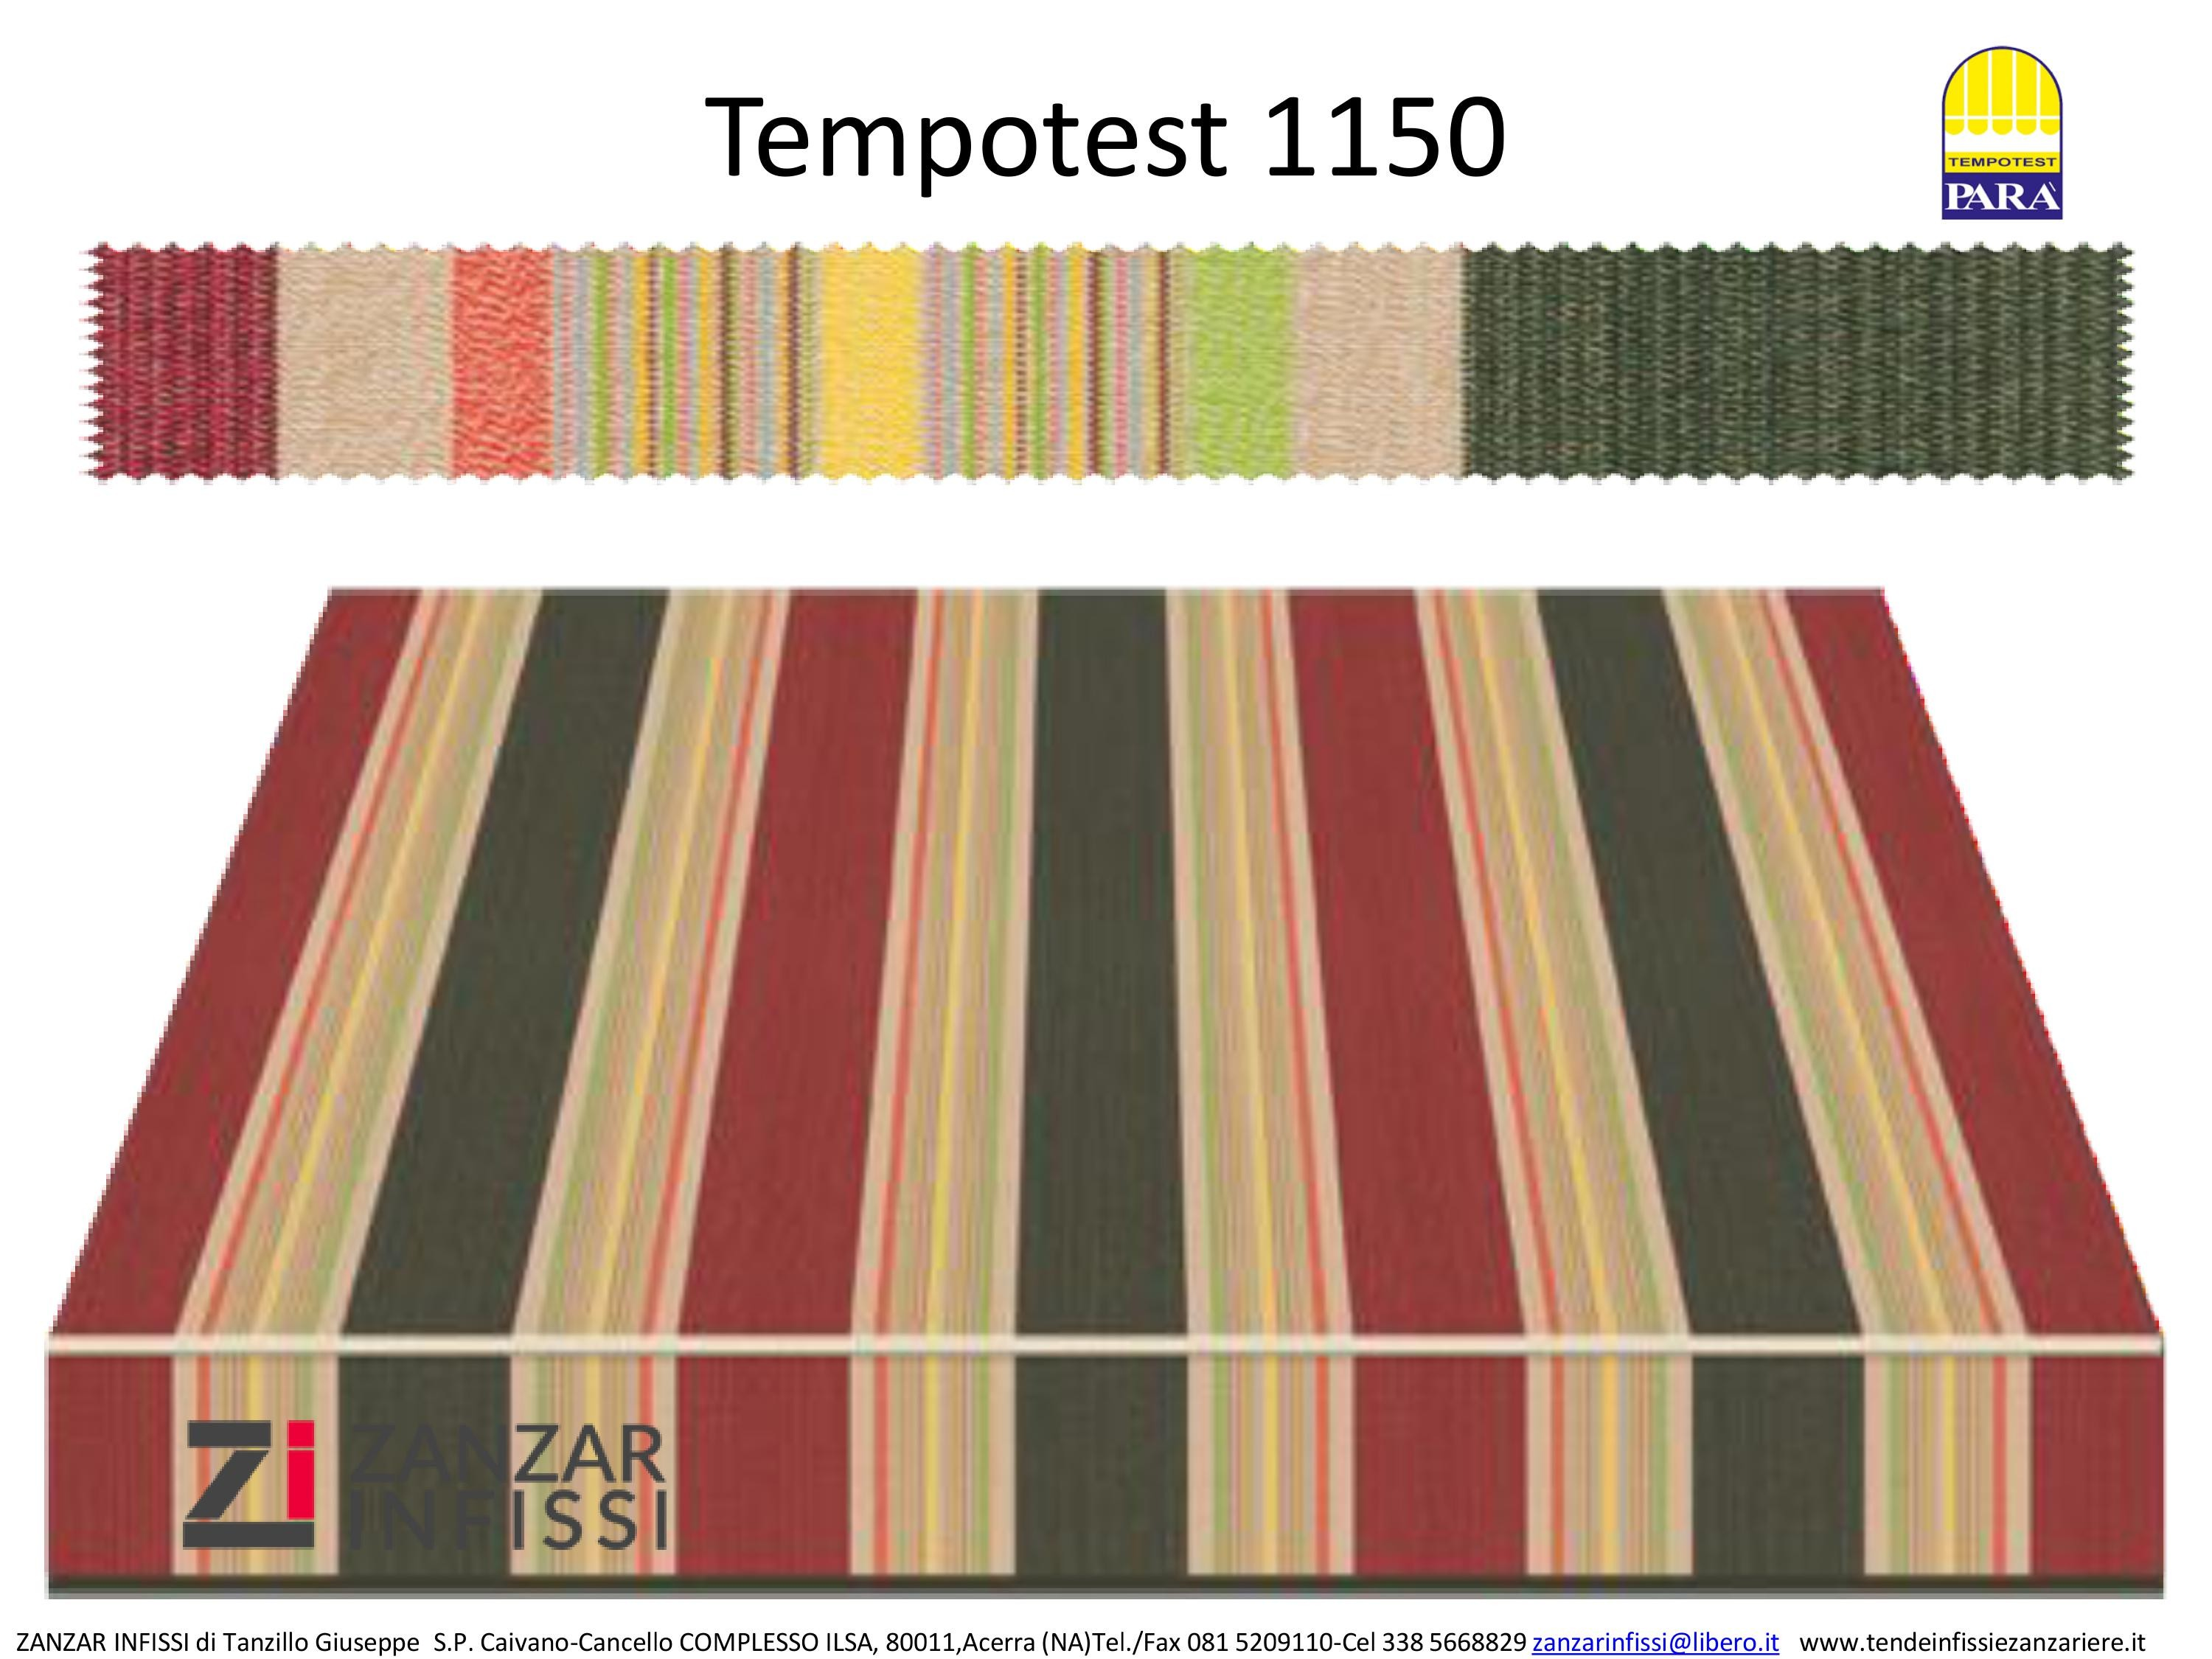 Tempotest 1150